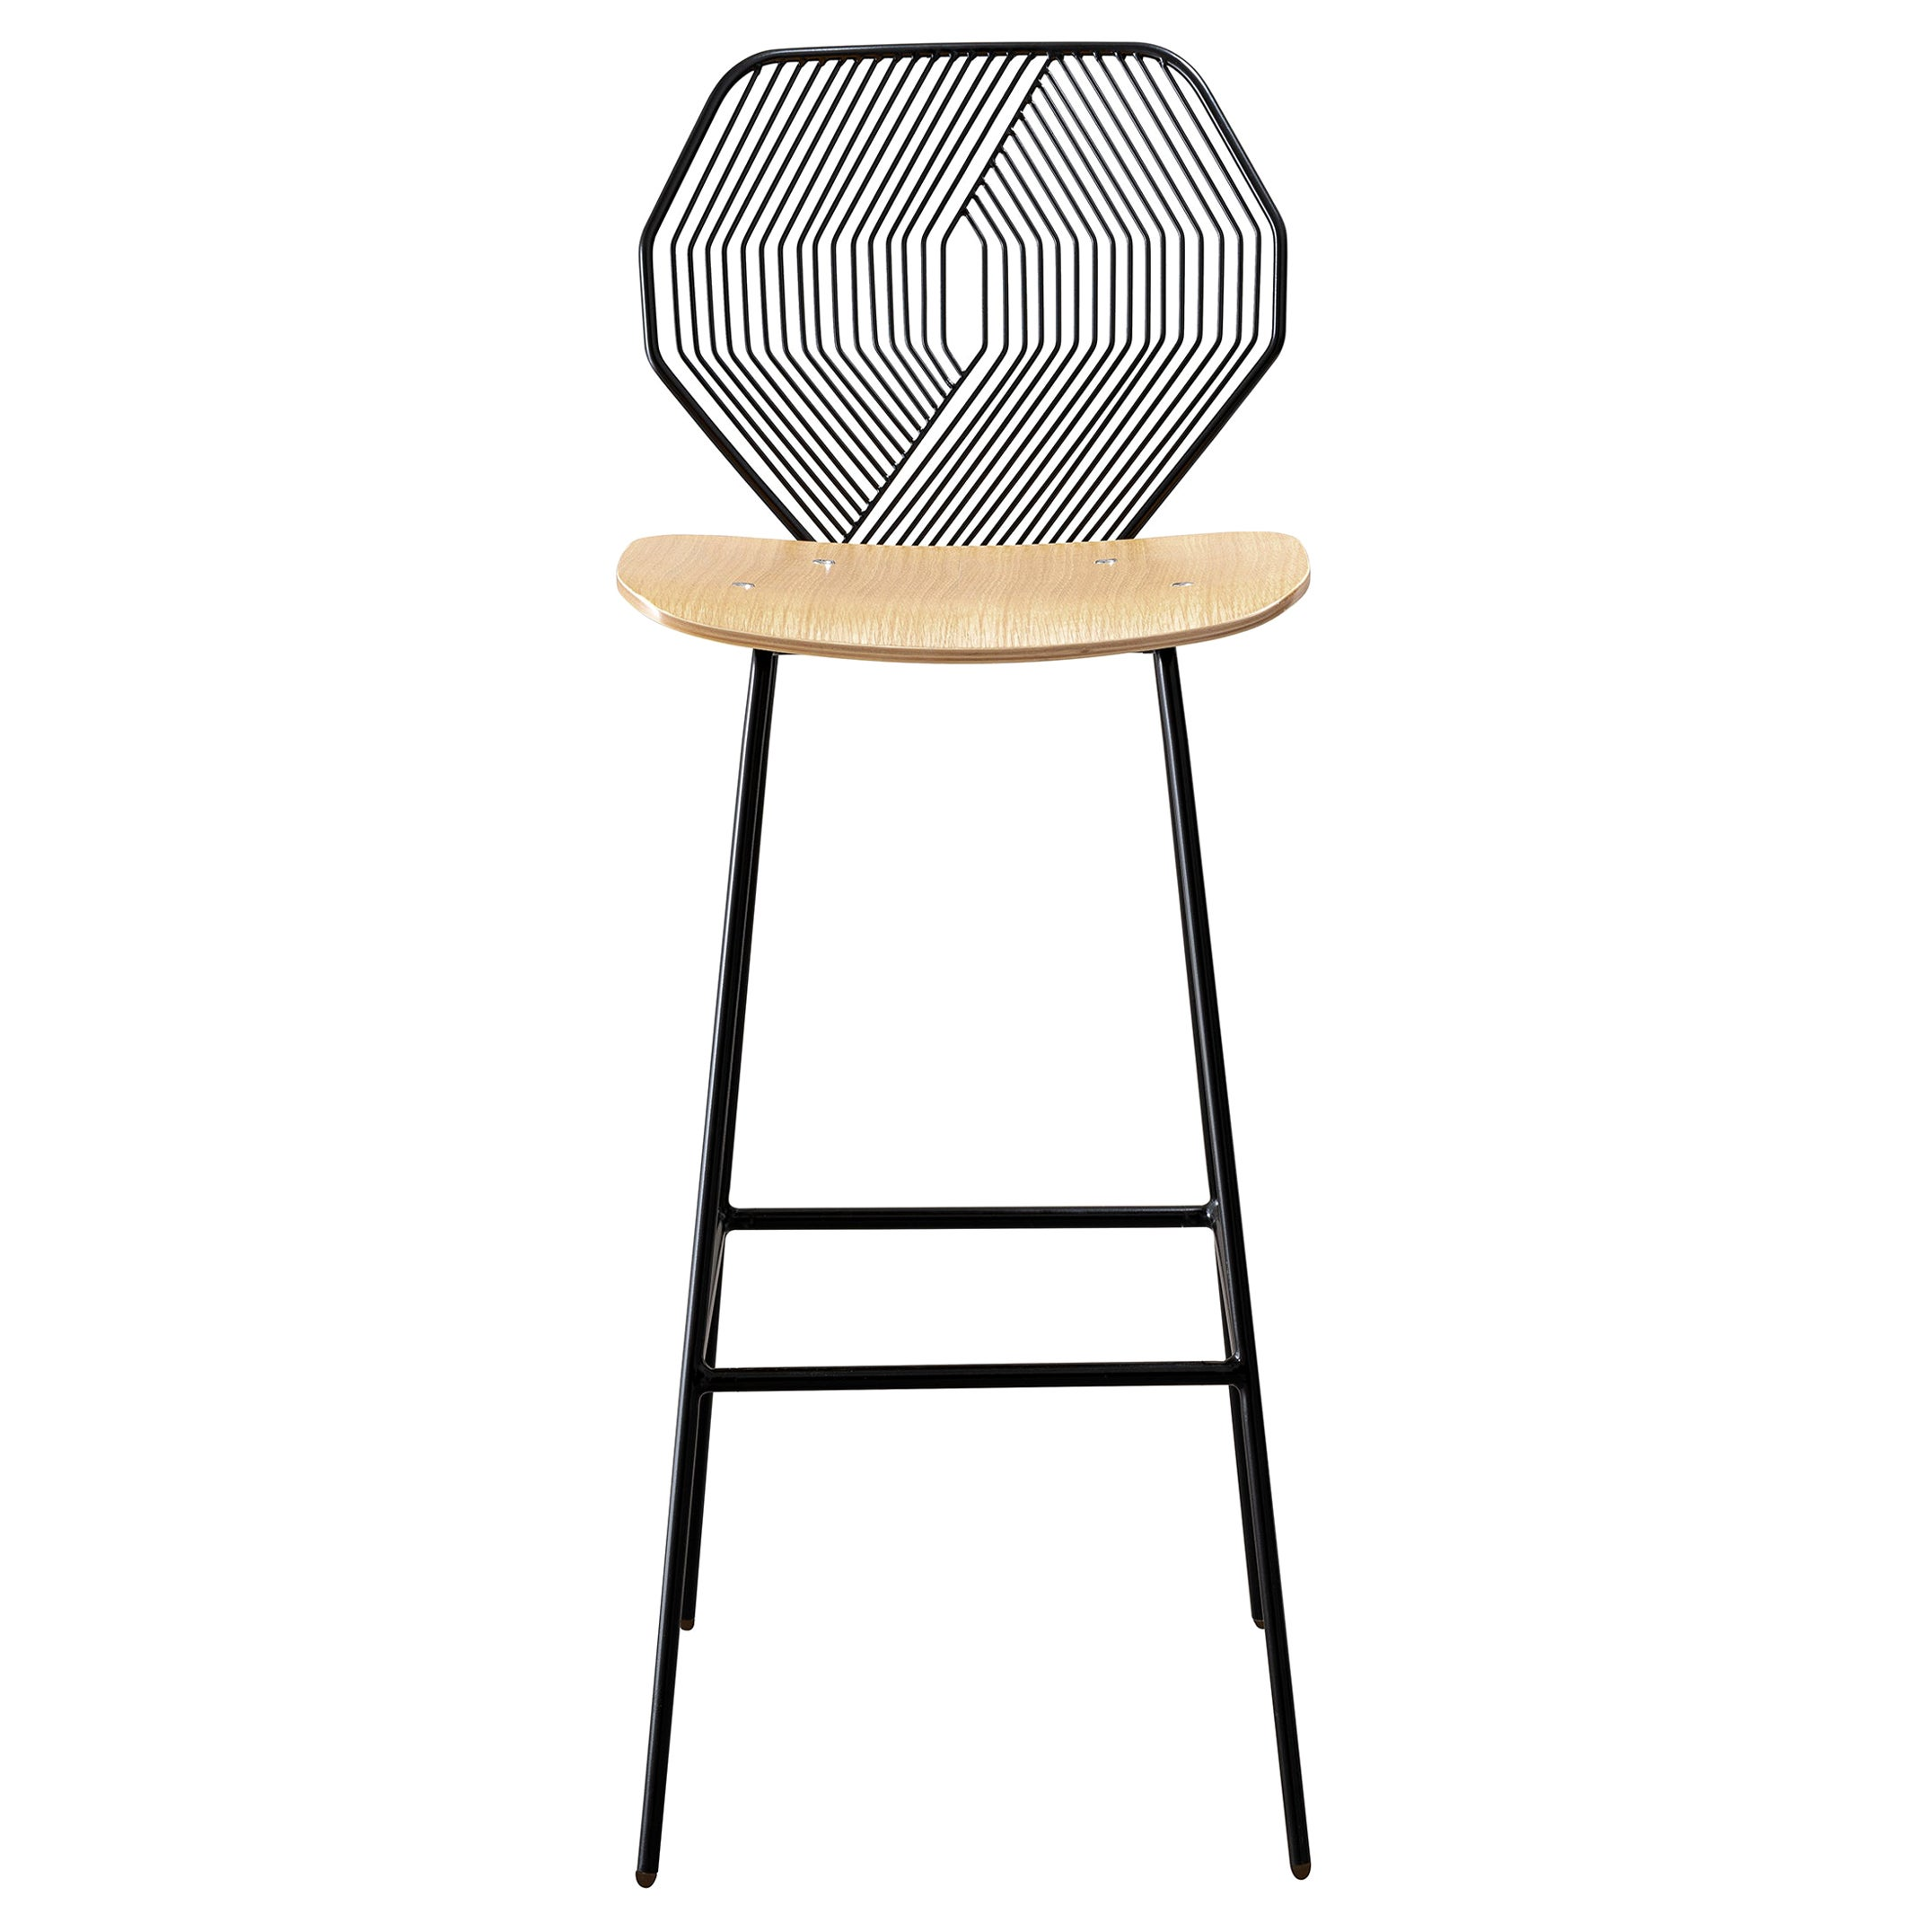 Modern Wire Bar Stool with a Wood Seat, Wood and Wire Bar Stool in Black